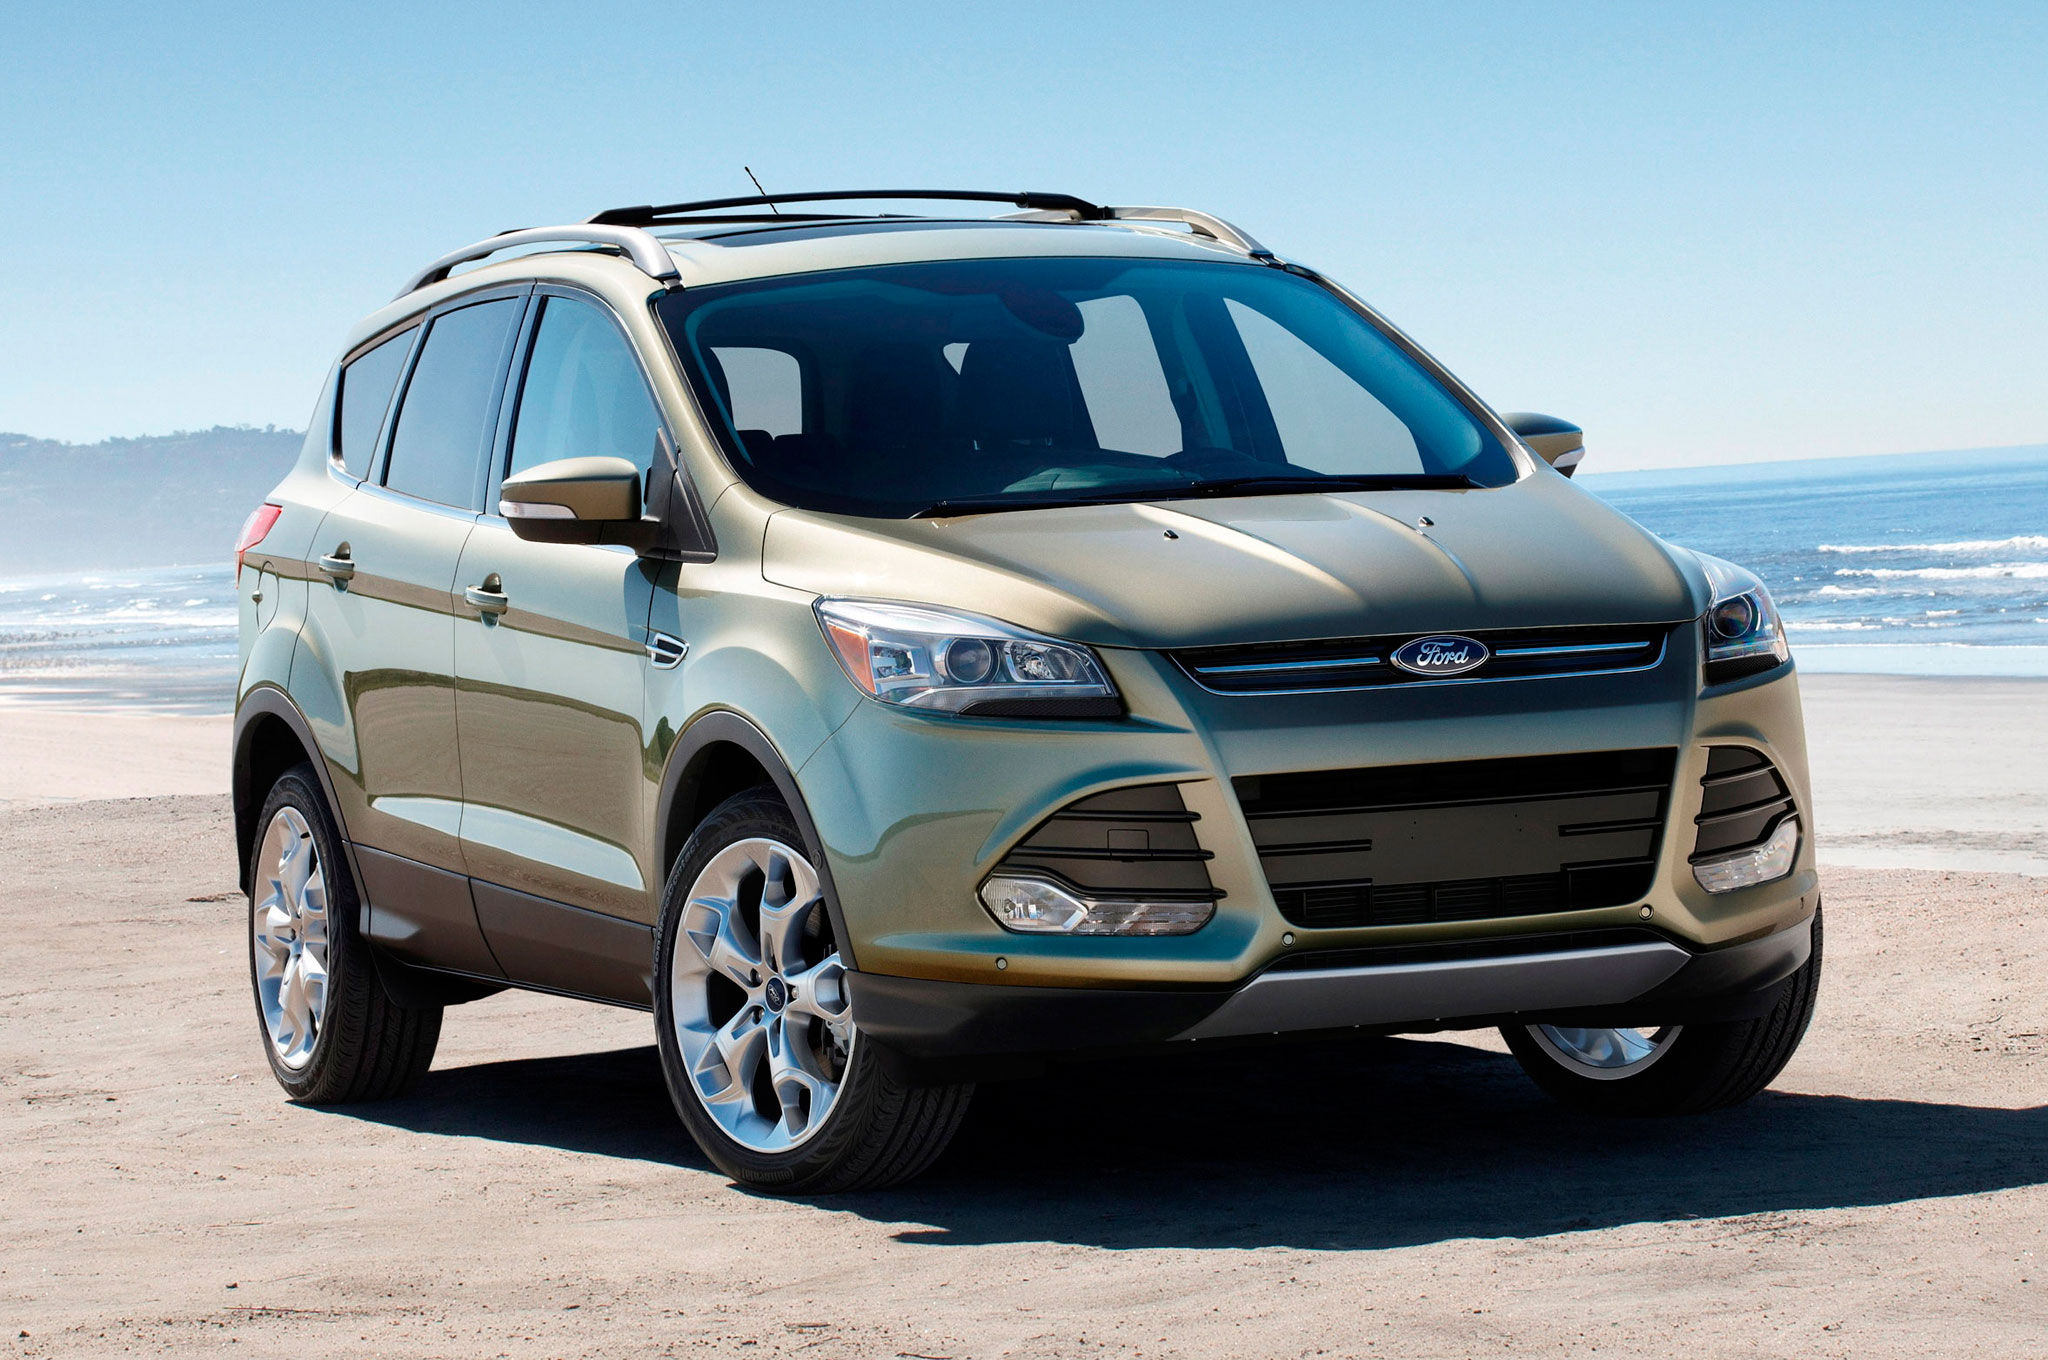 2014 Ford Escape #6